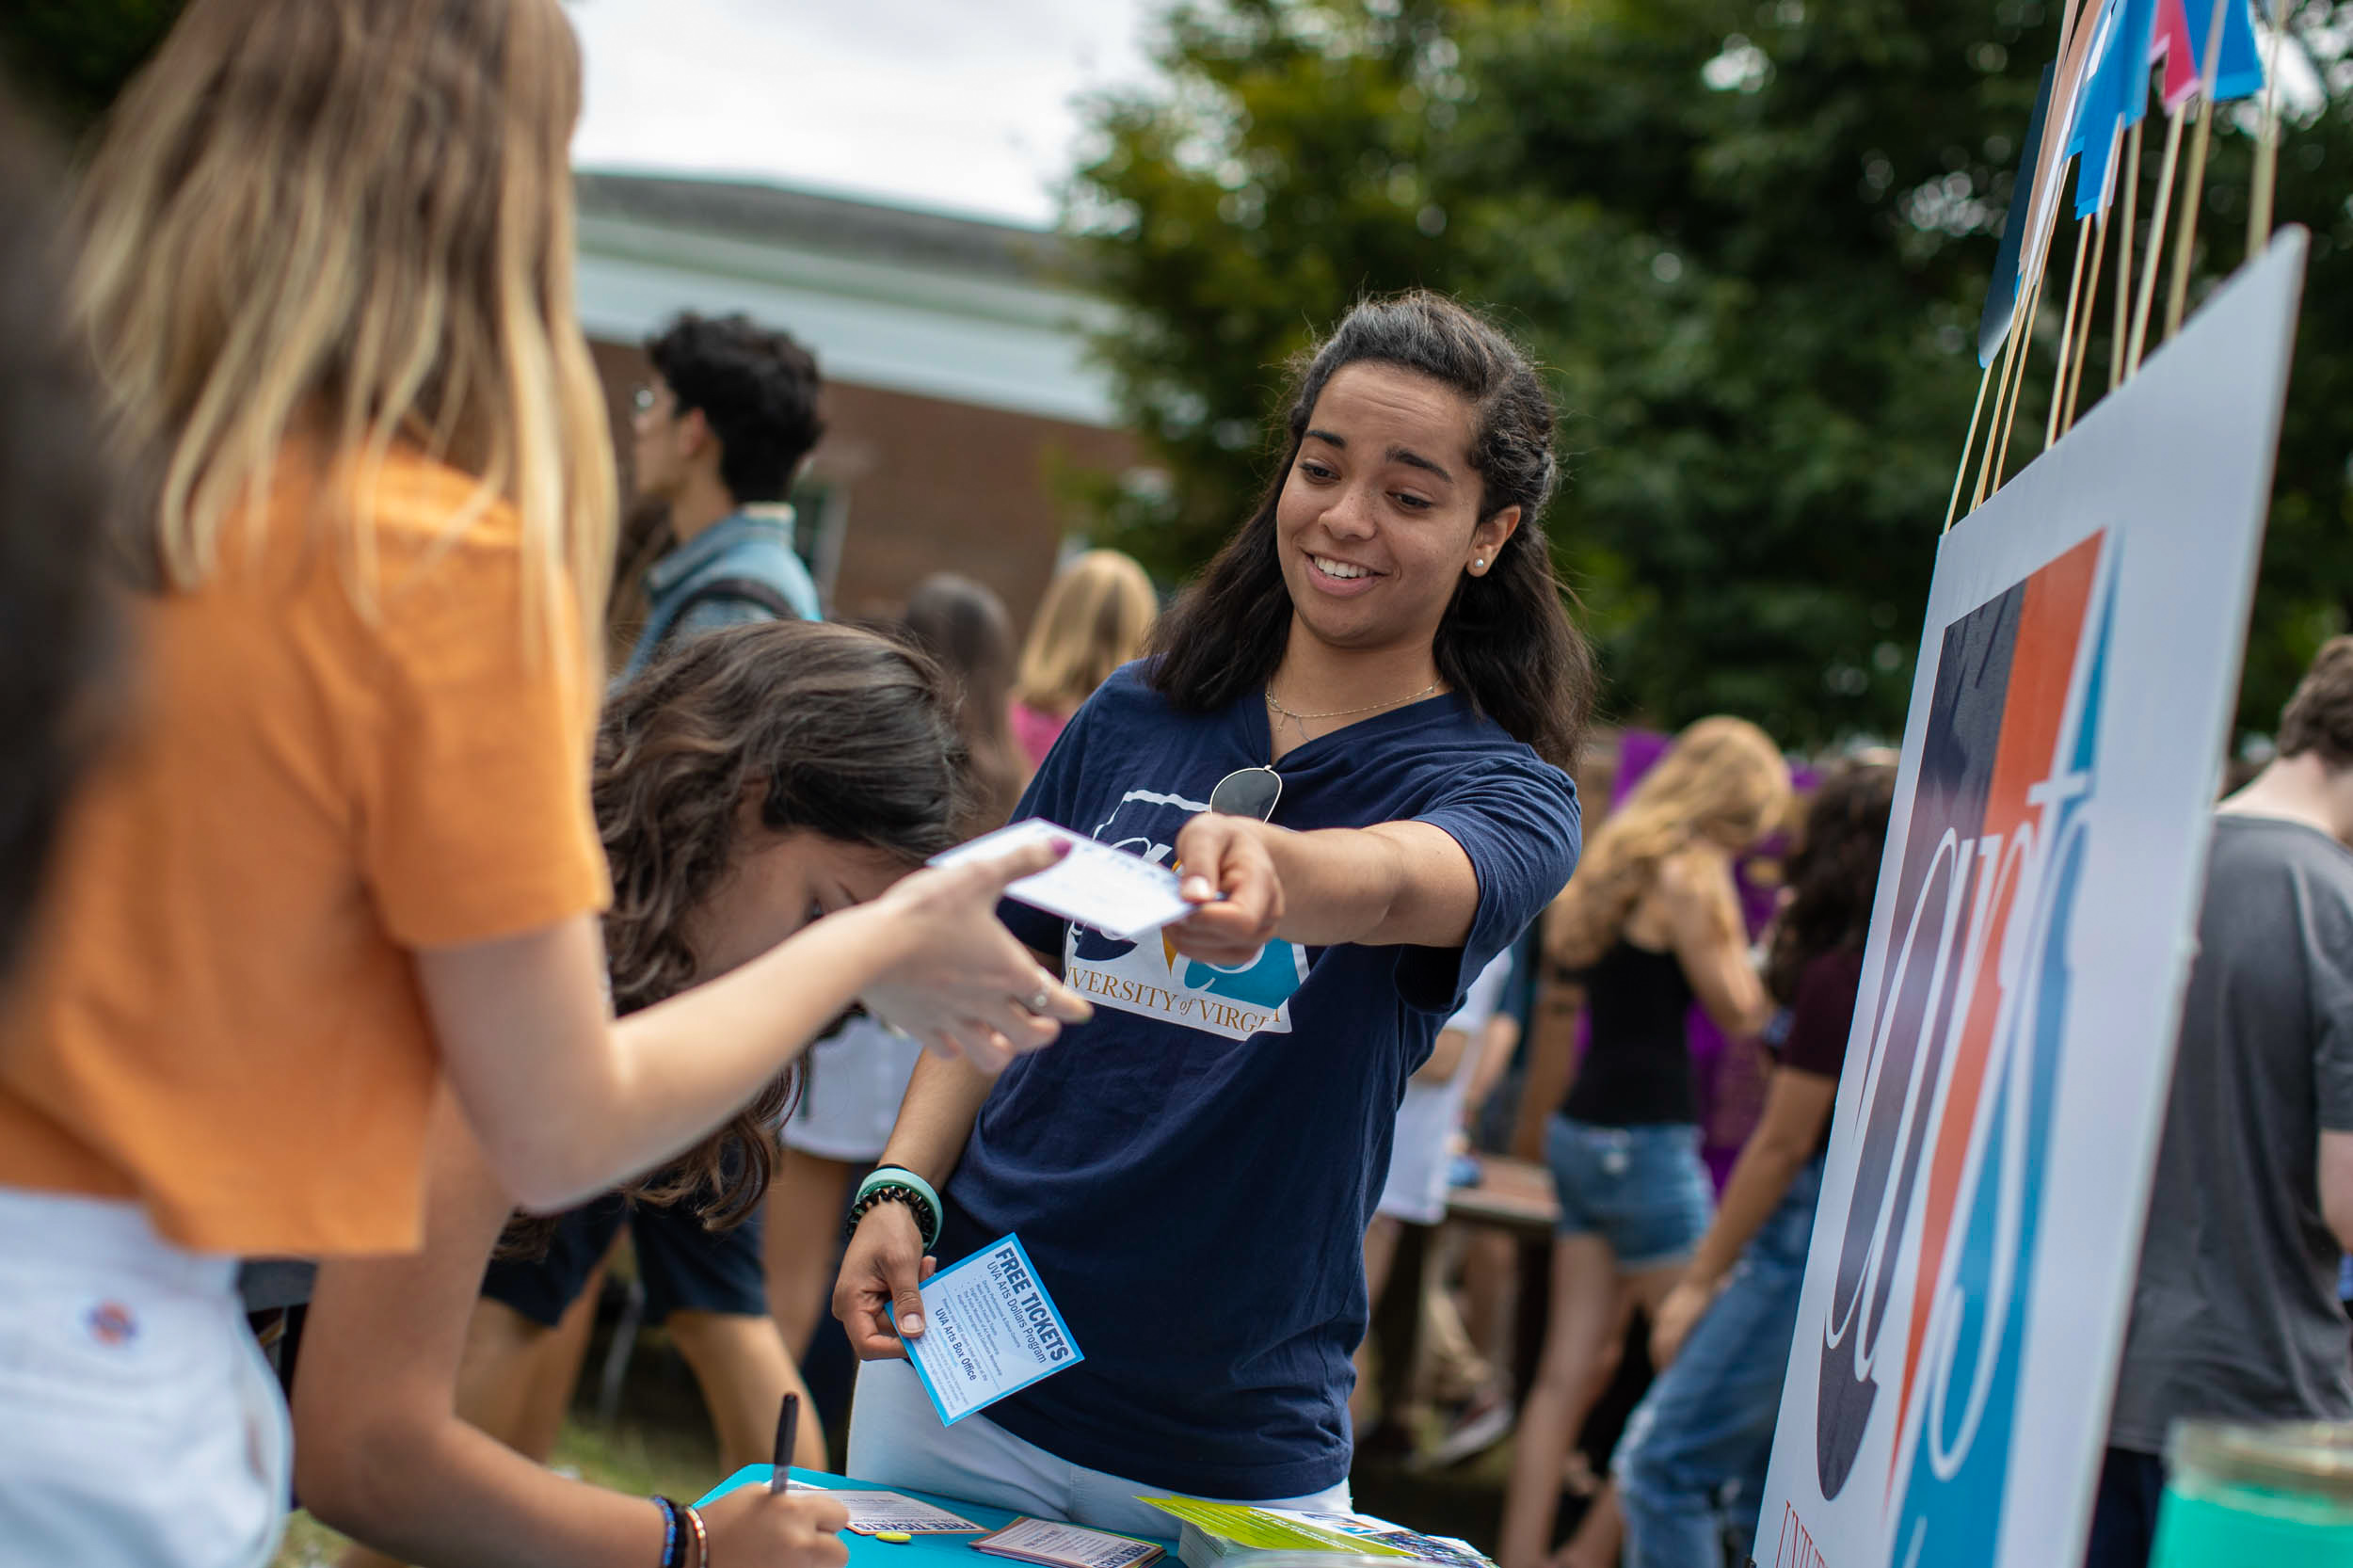 Photos: Need a New Hobby? The Student Activities Fair Has You Covered